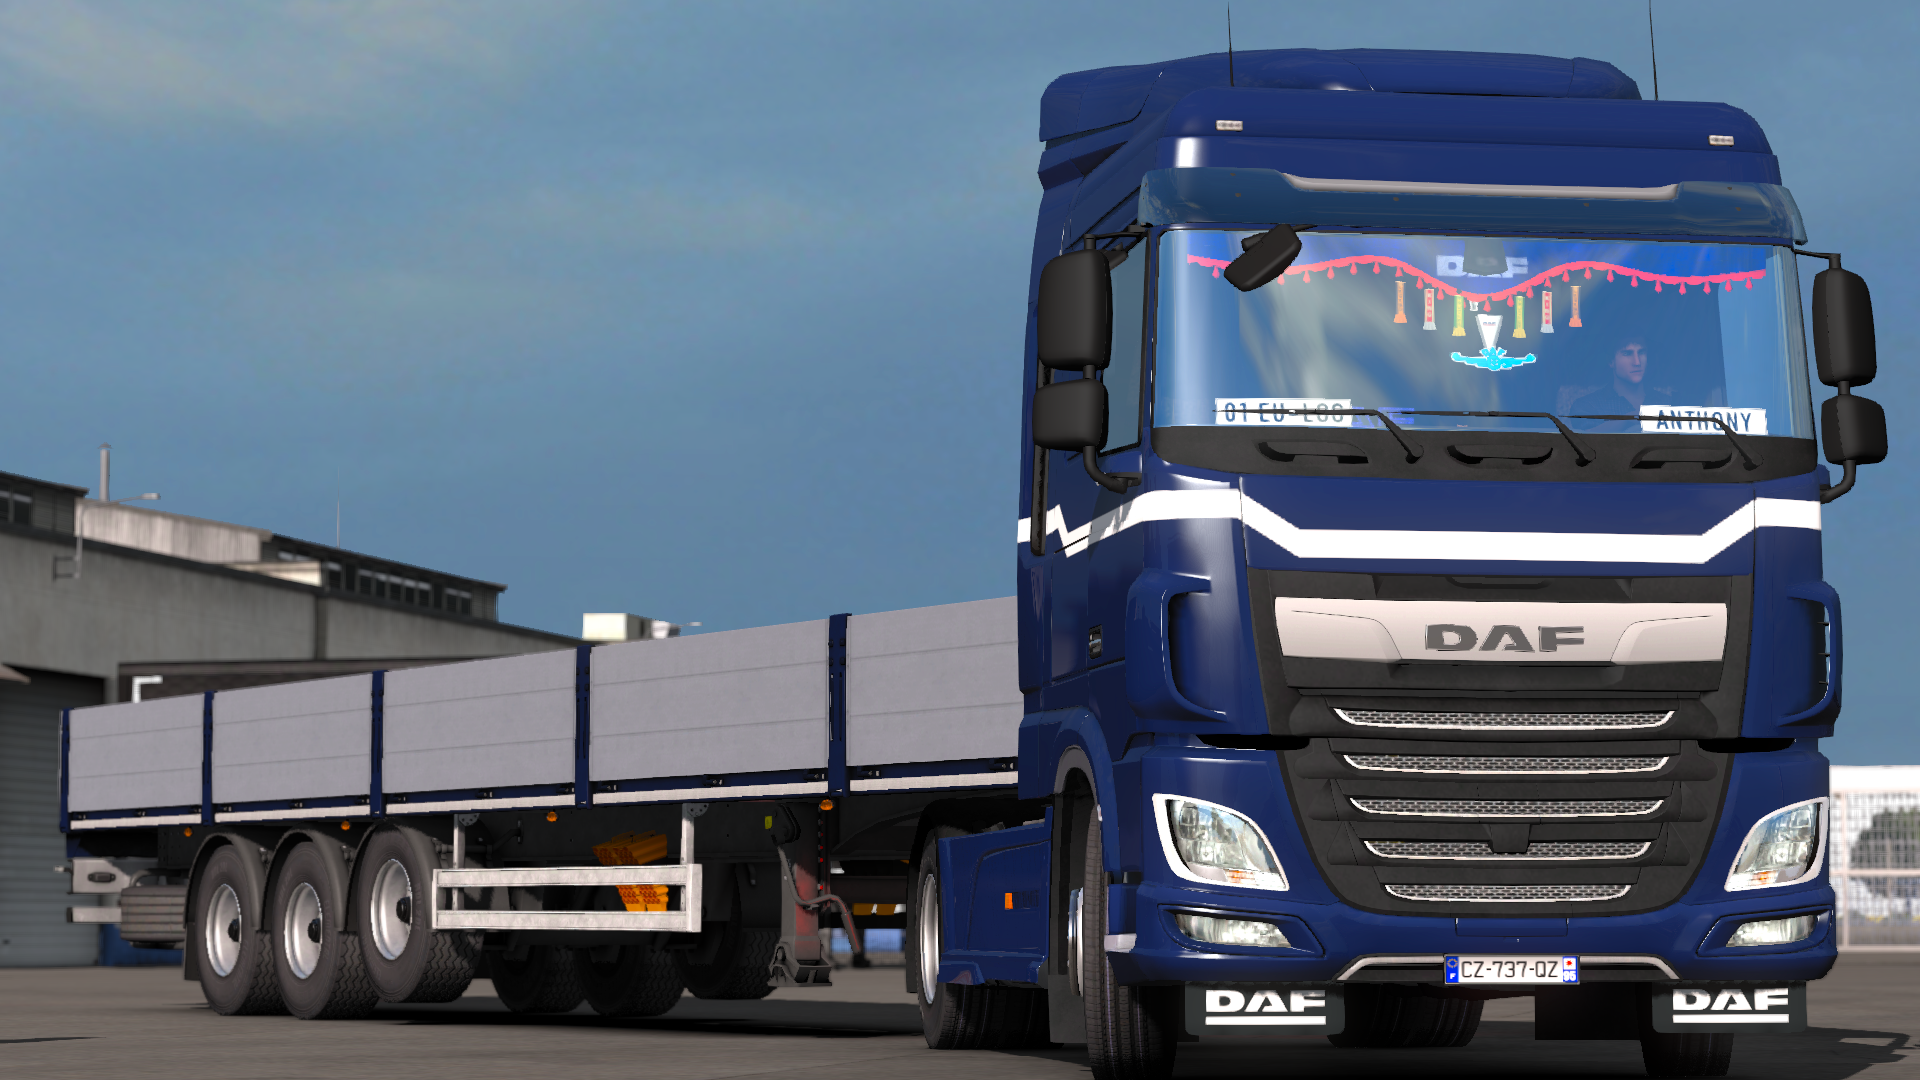 ets2_20181207_110946_00.png